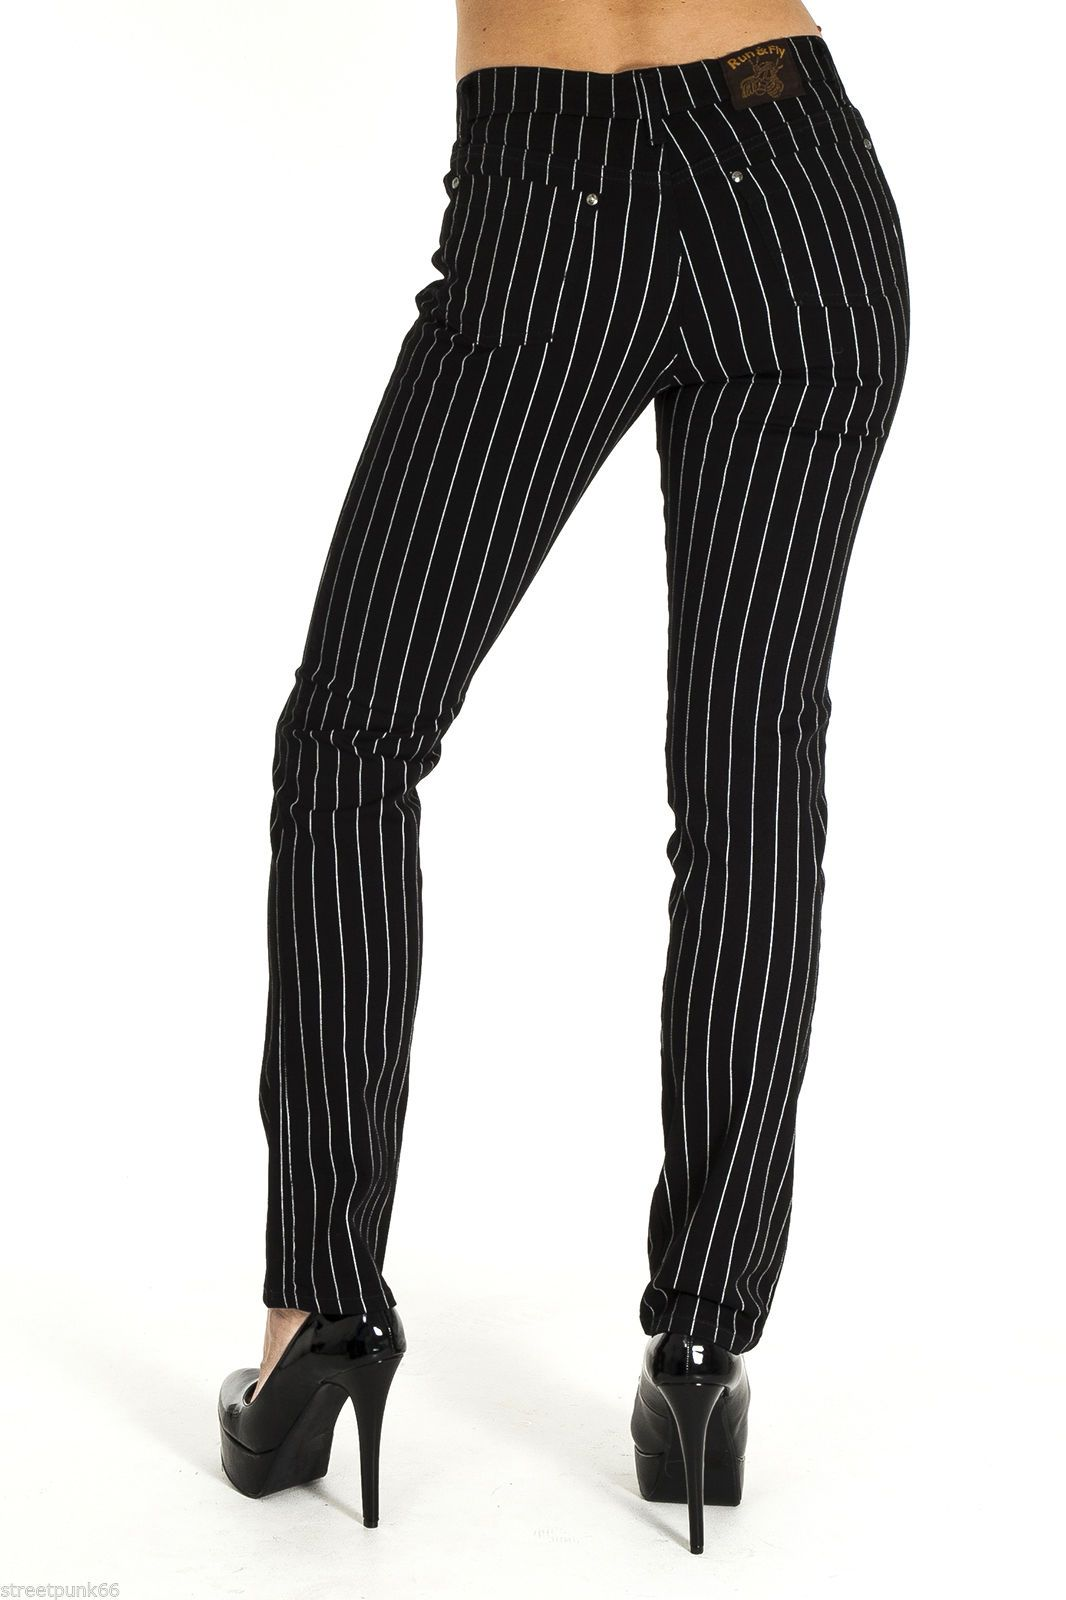 Womens Striped Jeans